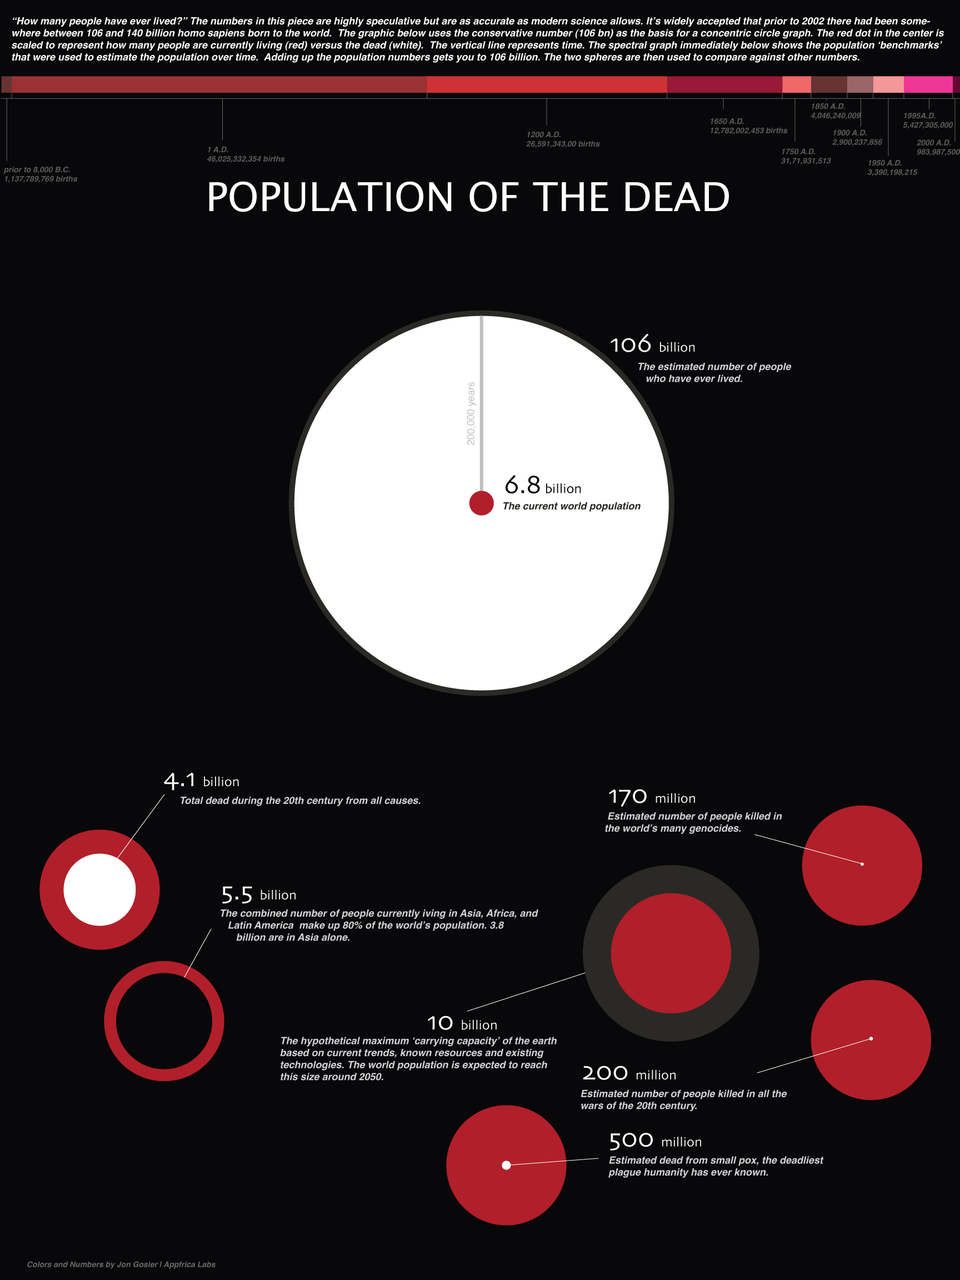 Population of the Dead Infographic.